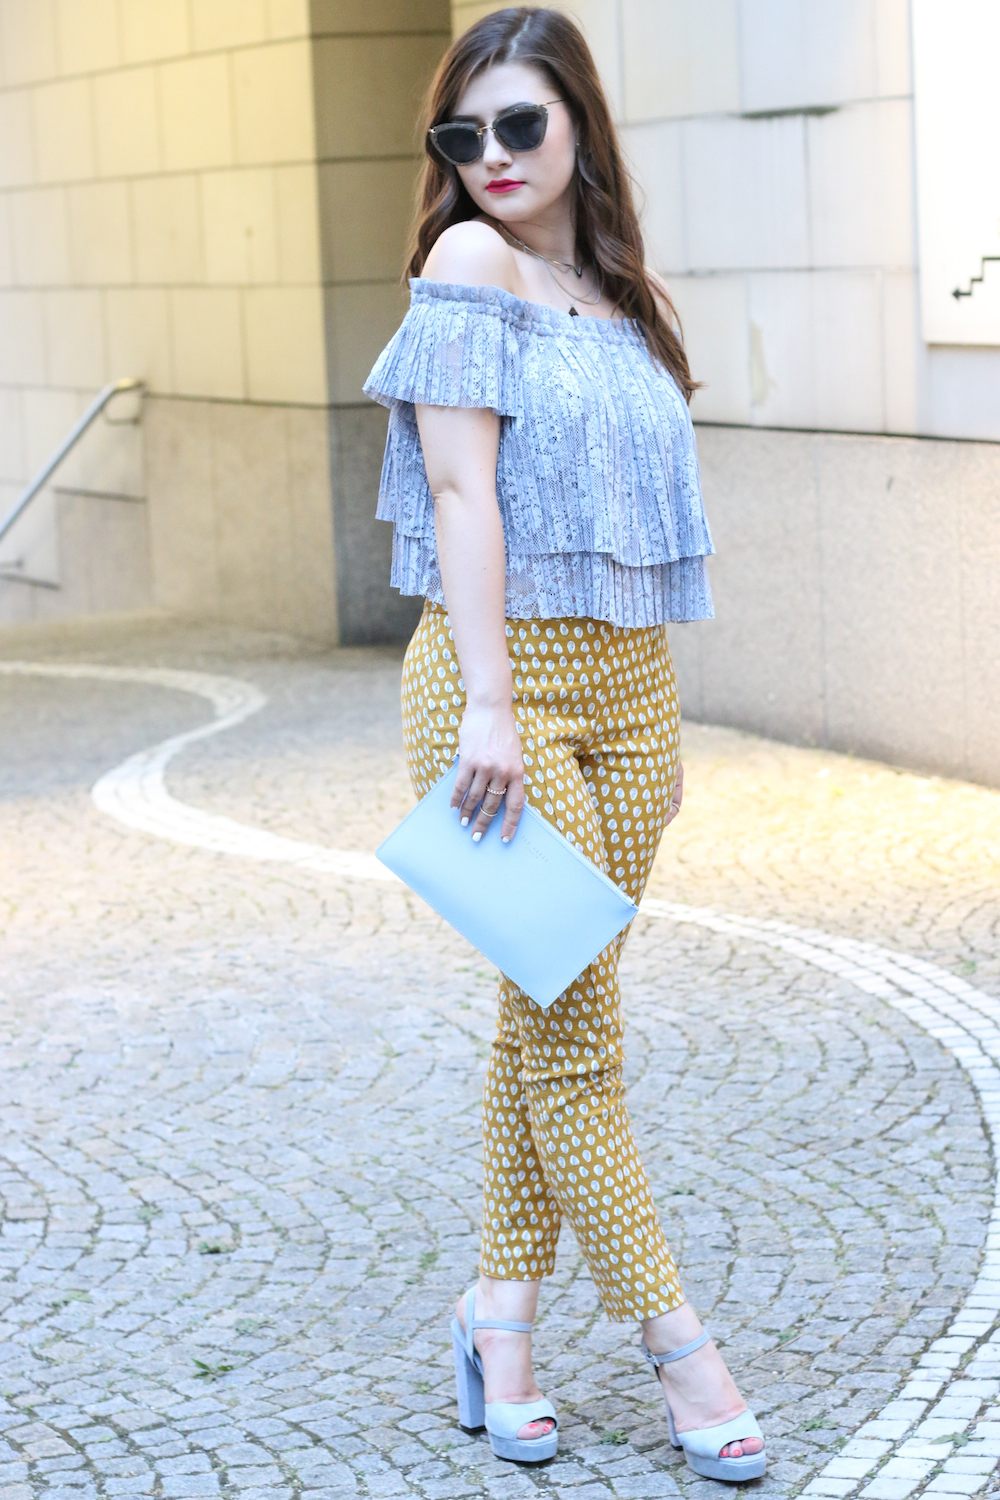 München_Fashion_Blogger_70s_Style_Munich